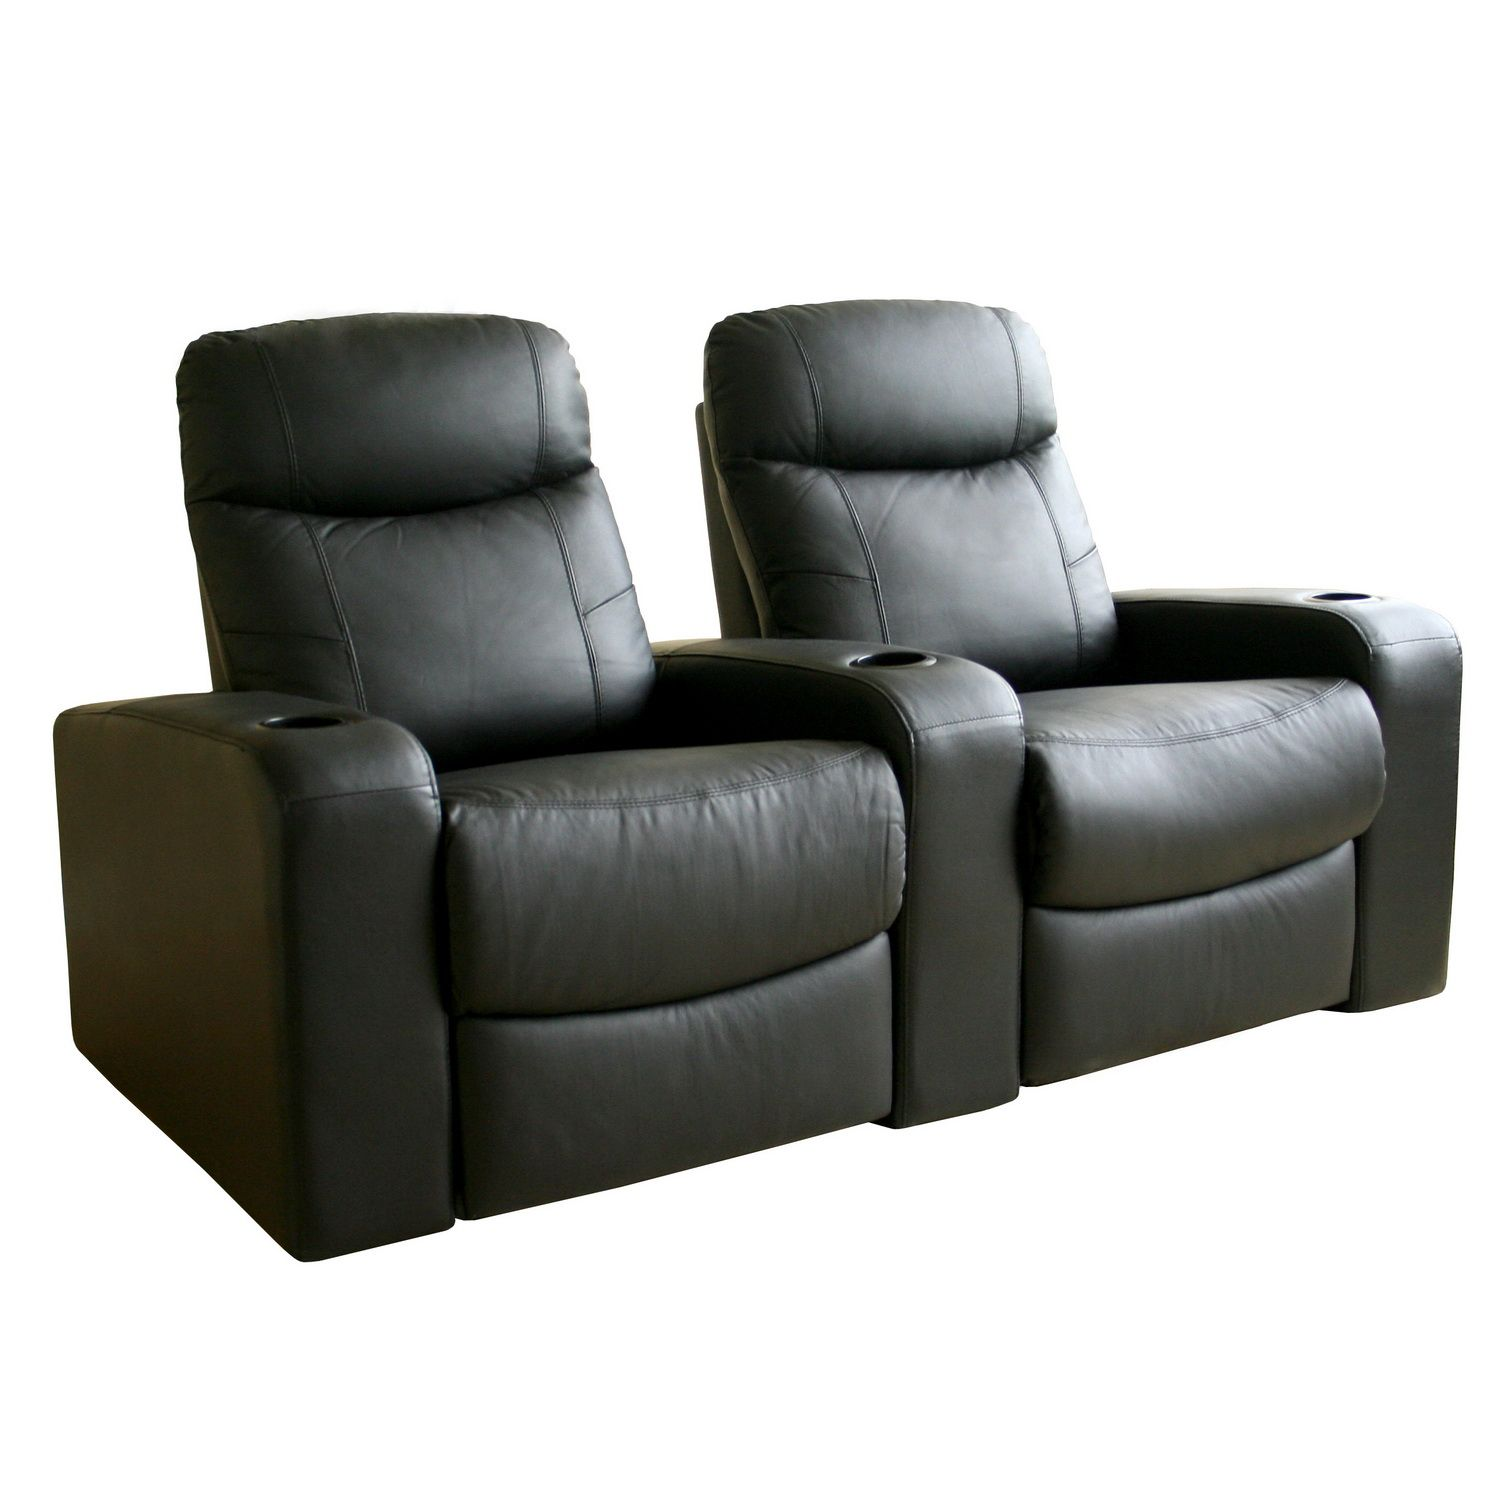 Movie Chairs For Home Theaters Baxton Studio Angus Leather Home Theater Recliner Set Of